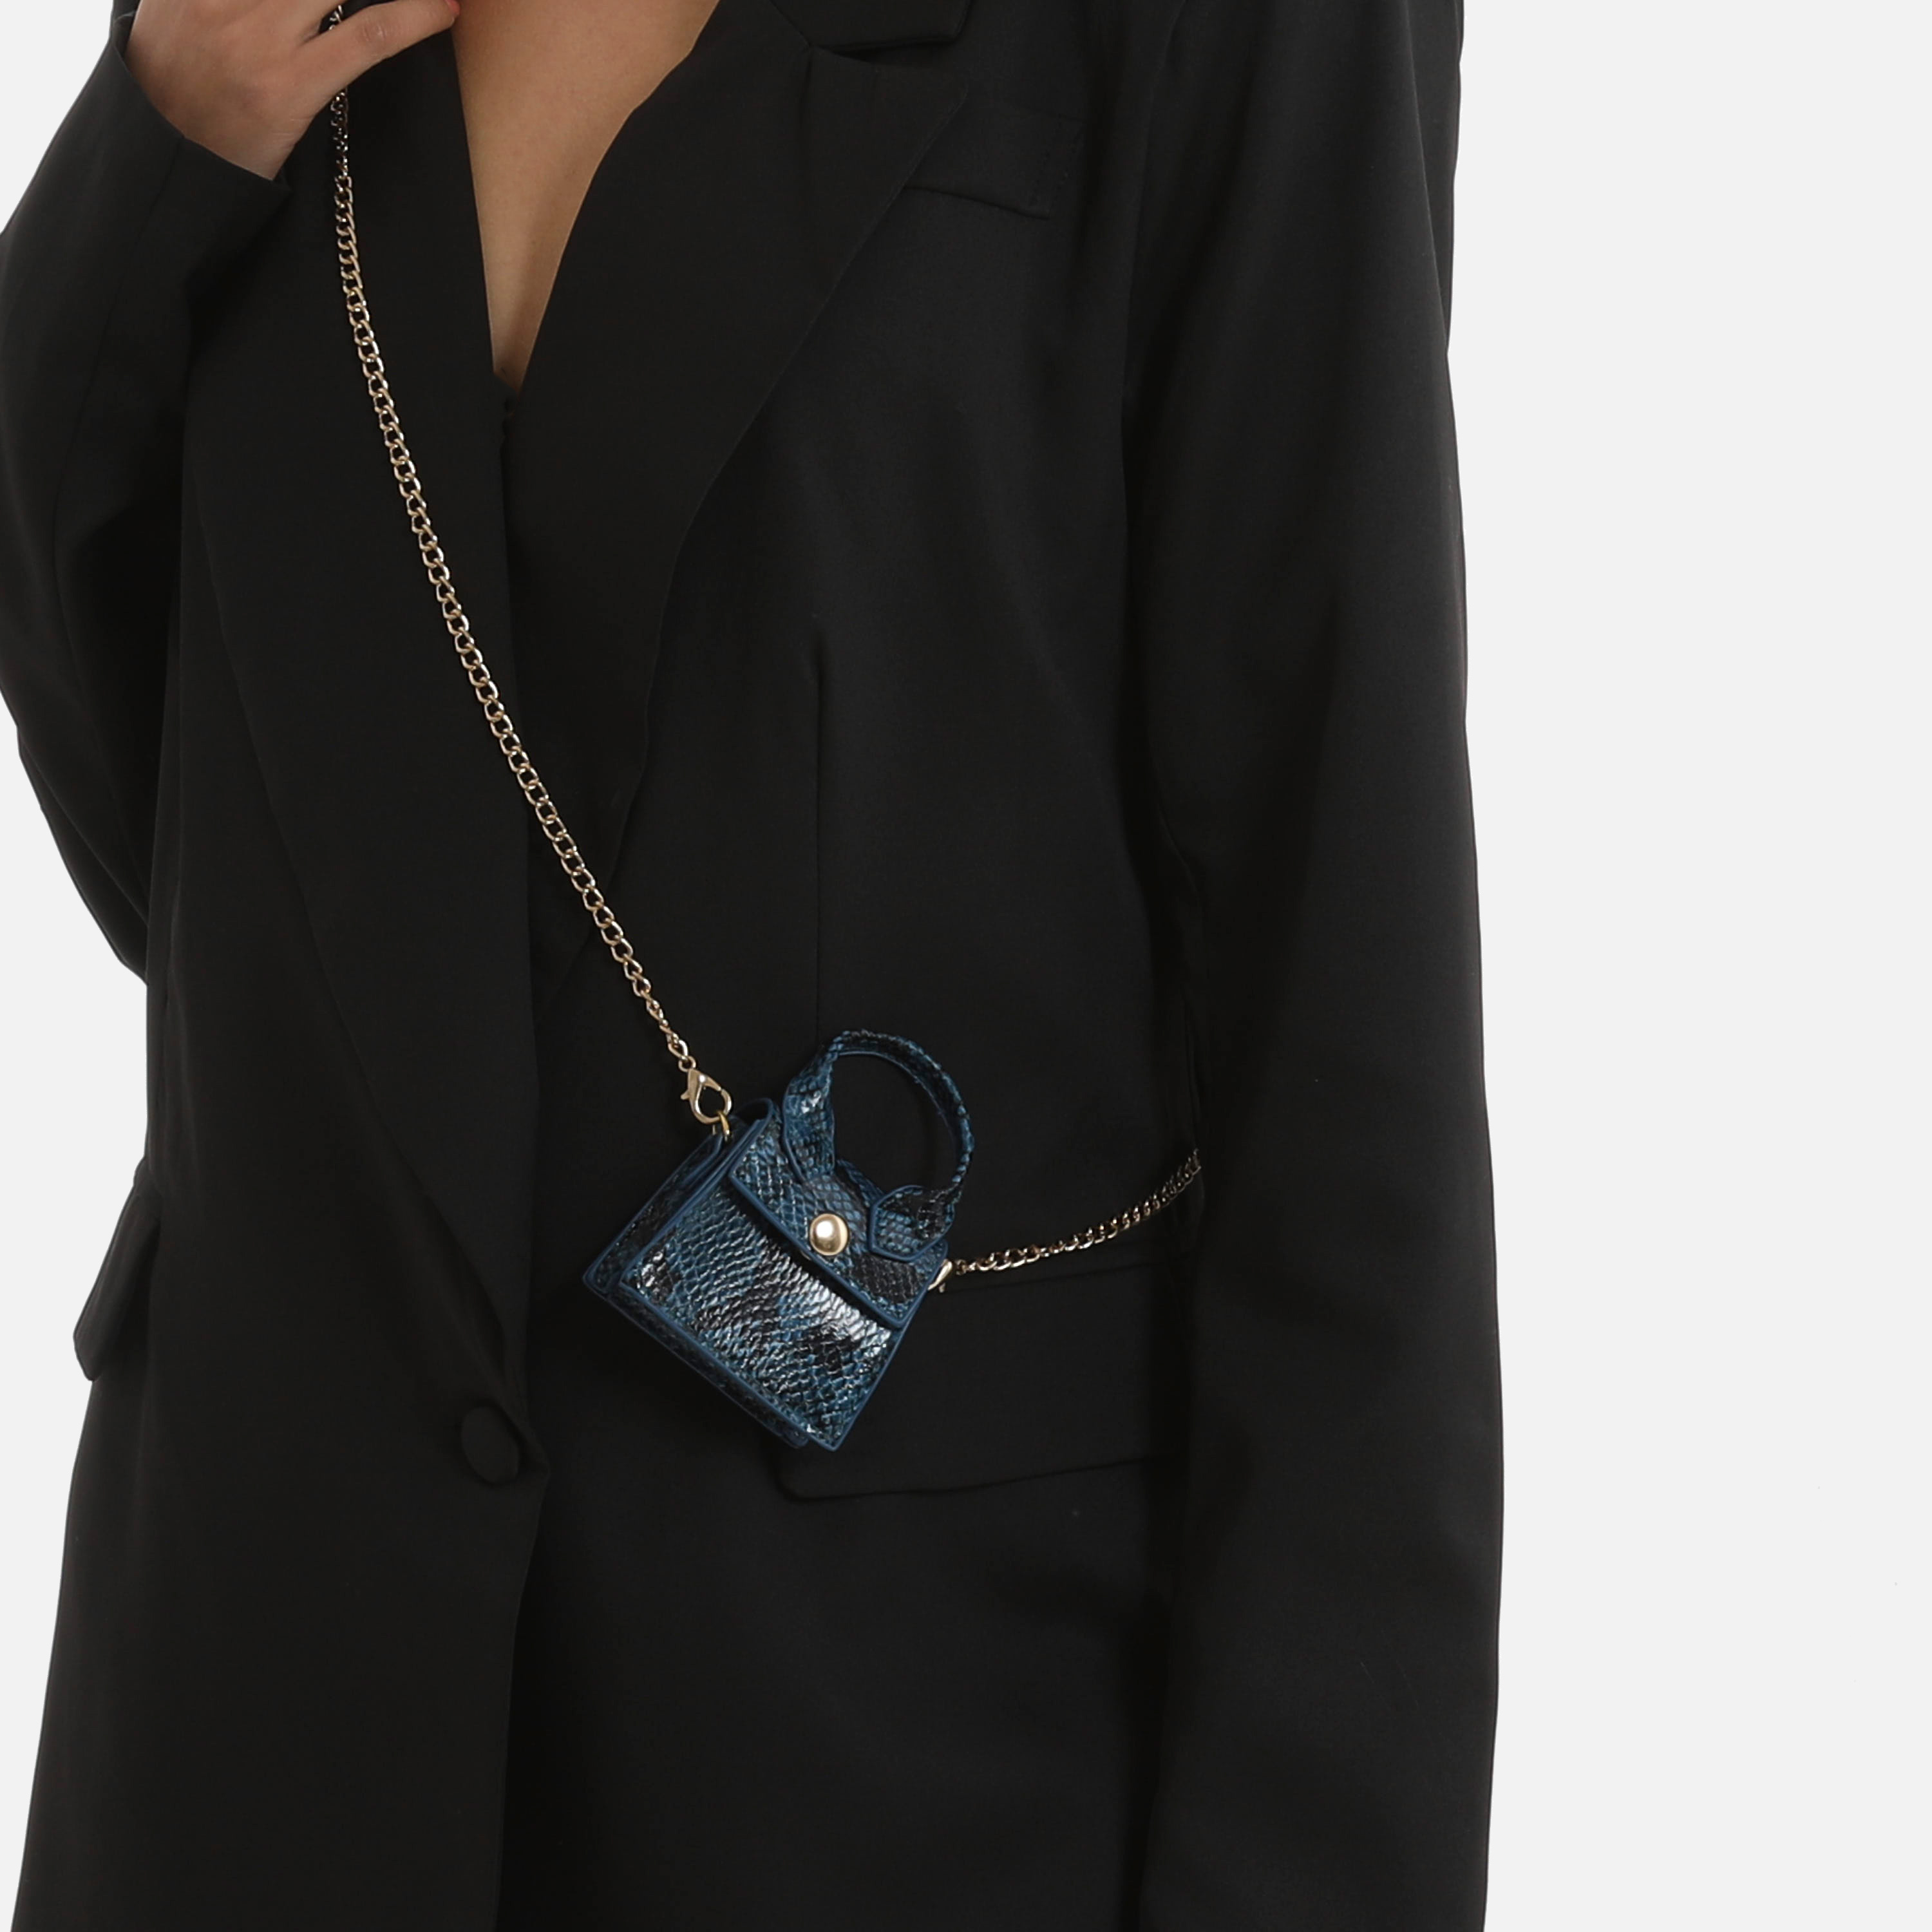 Micro Grab Bag In Blue Snake Print Faux Leather